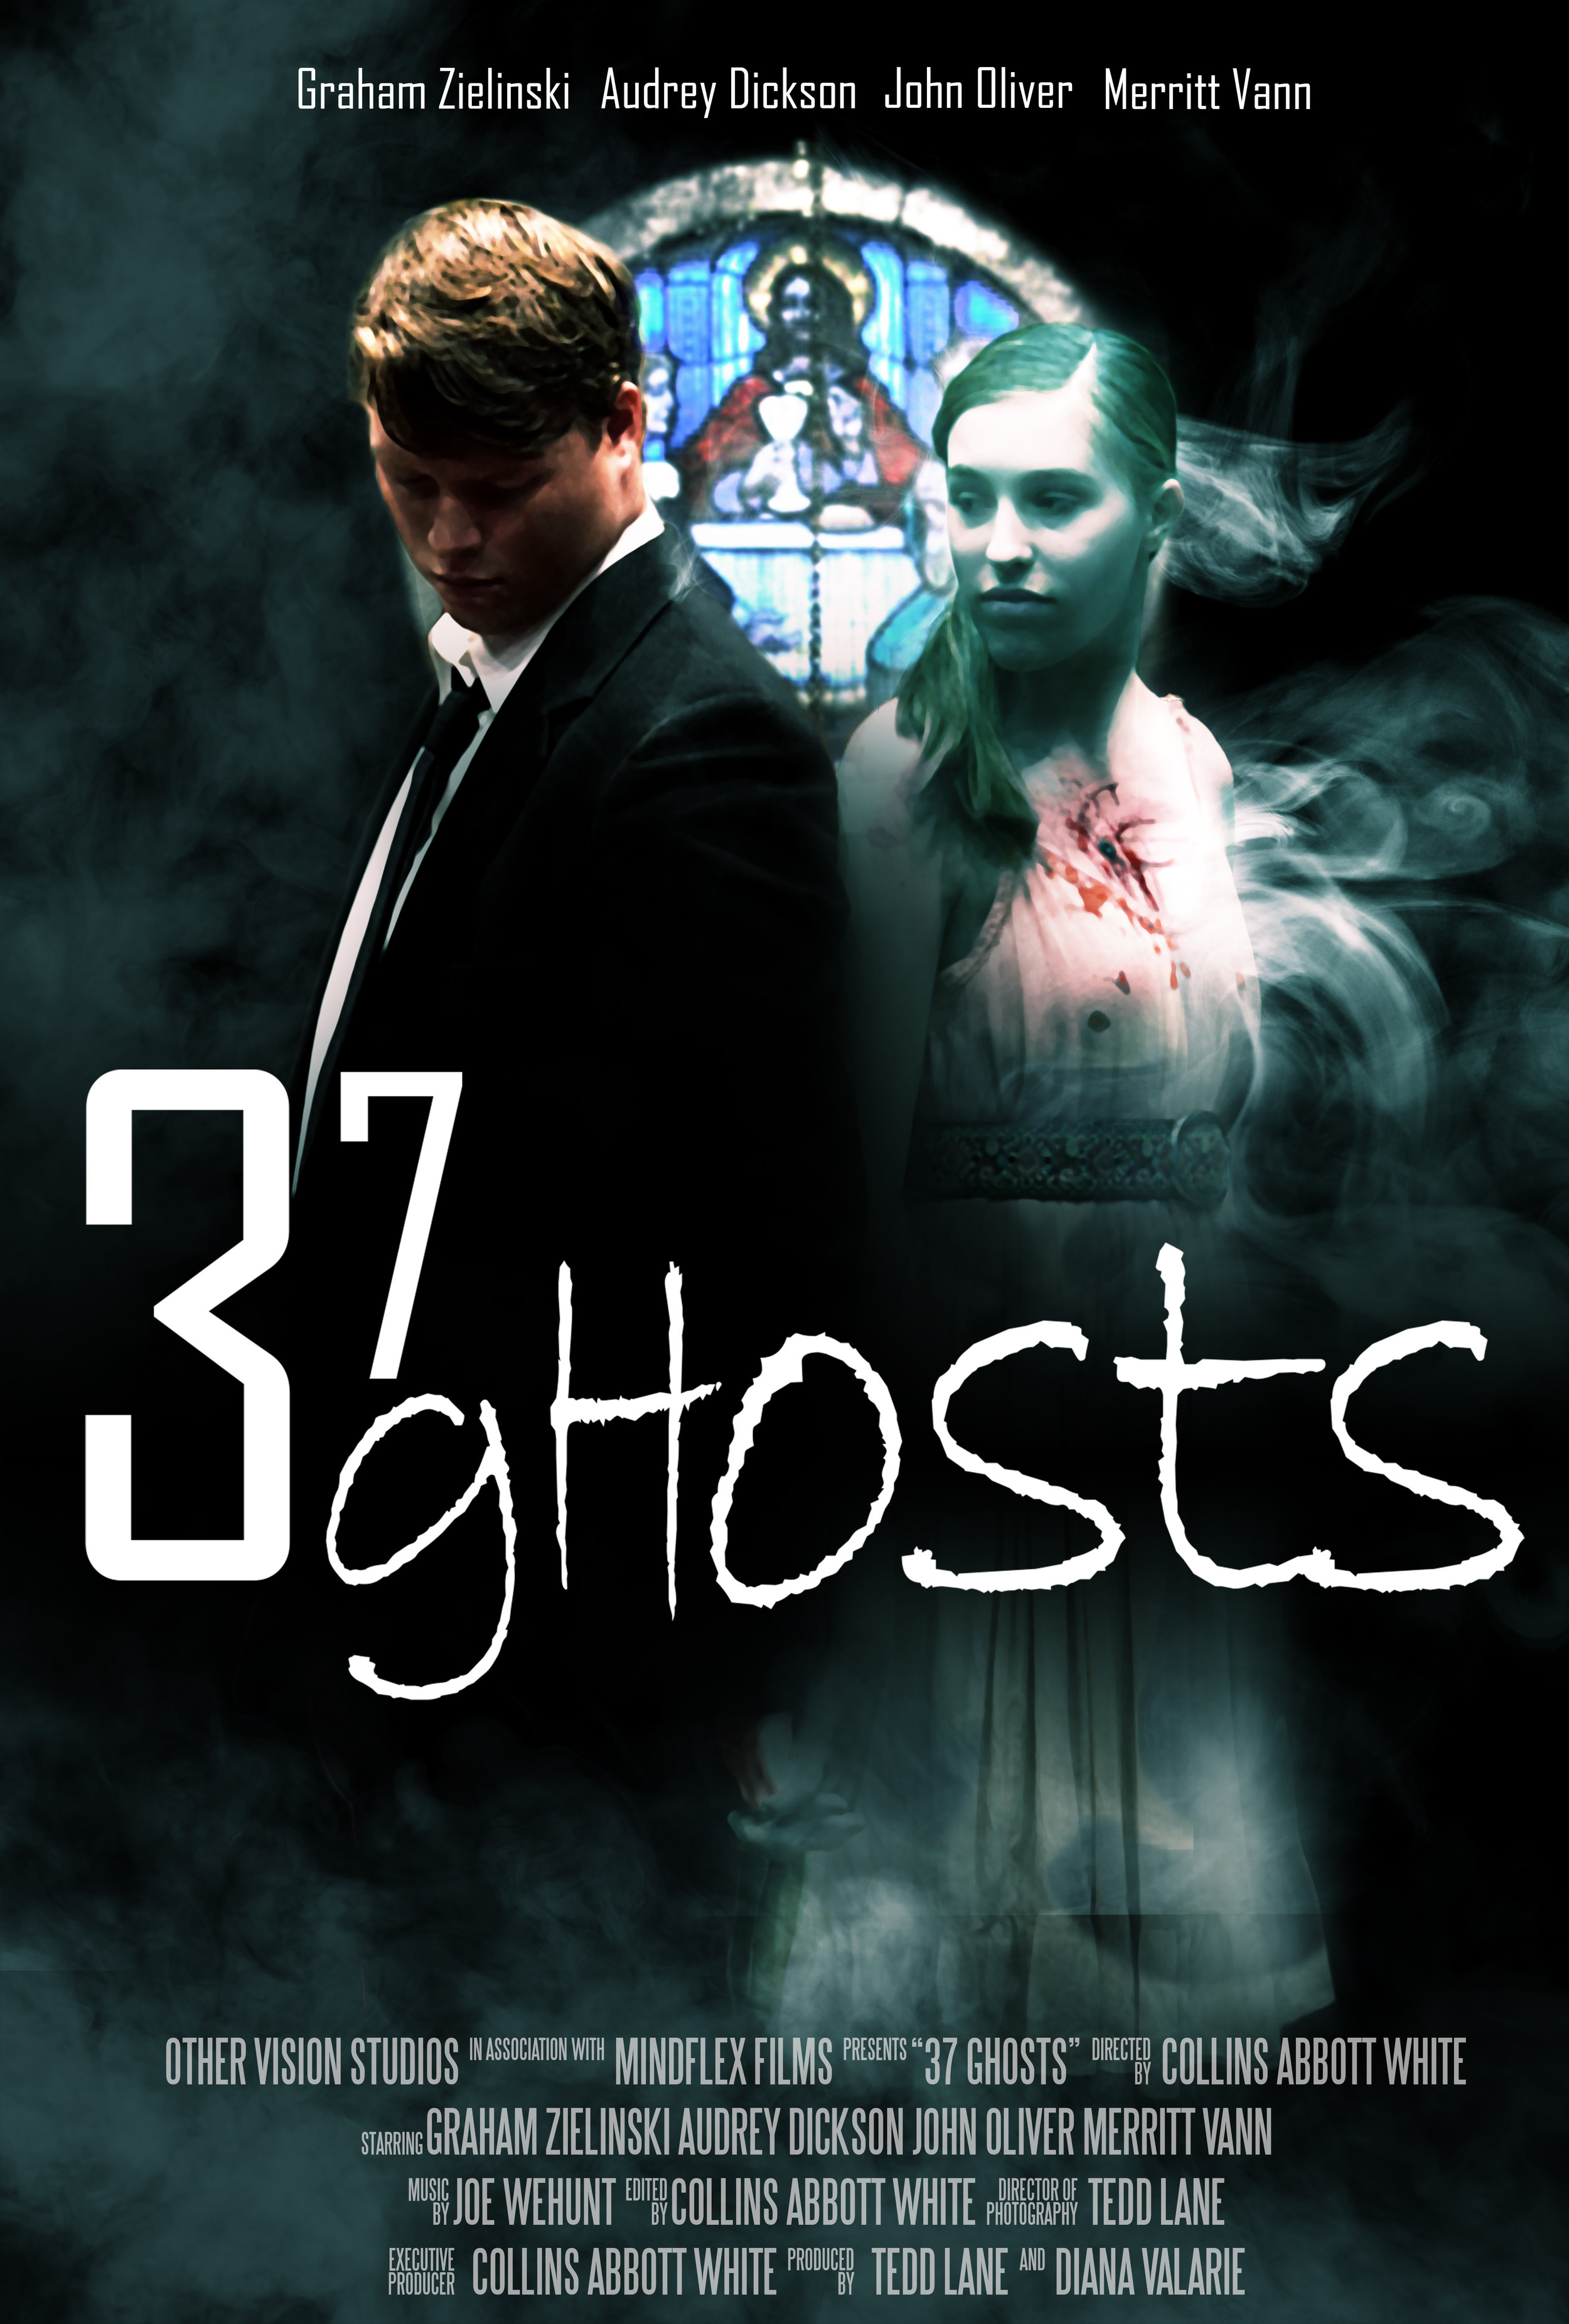 37 Ghosts - Poster - Small.jpg